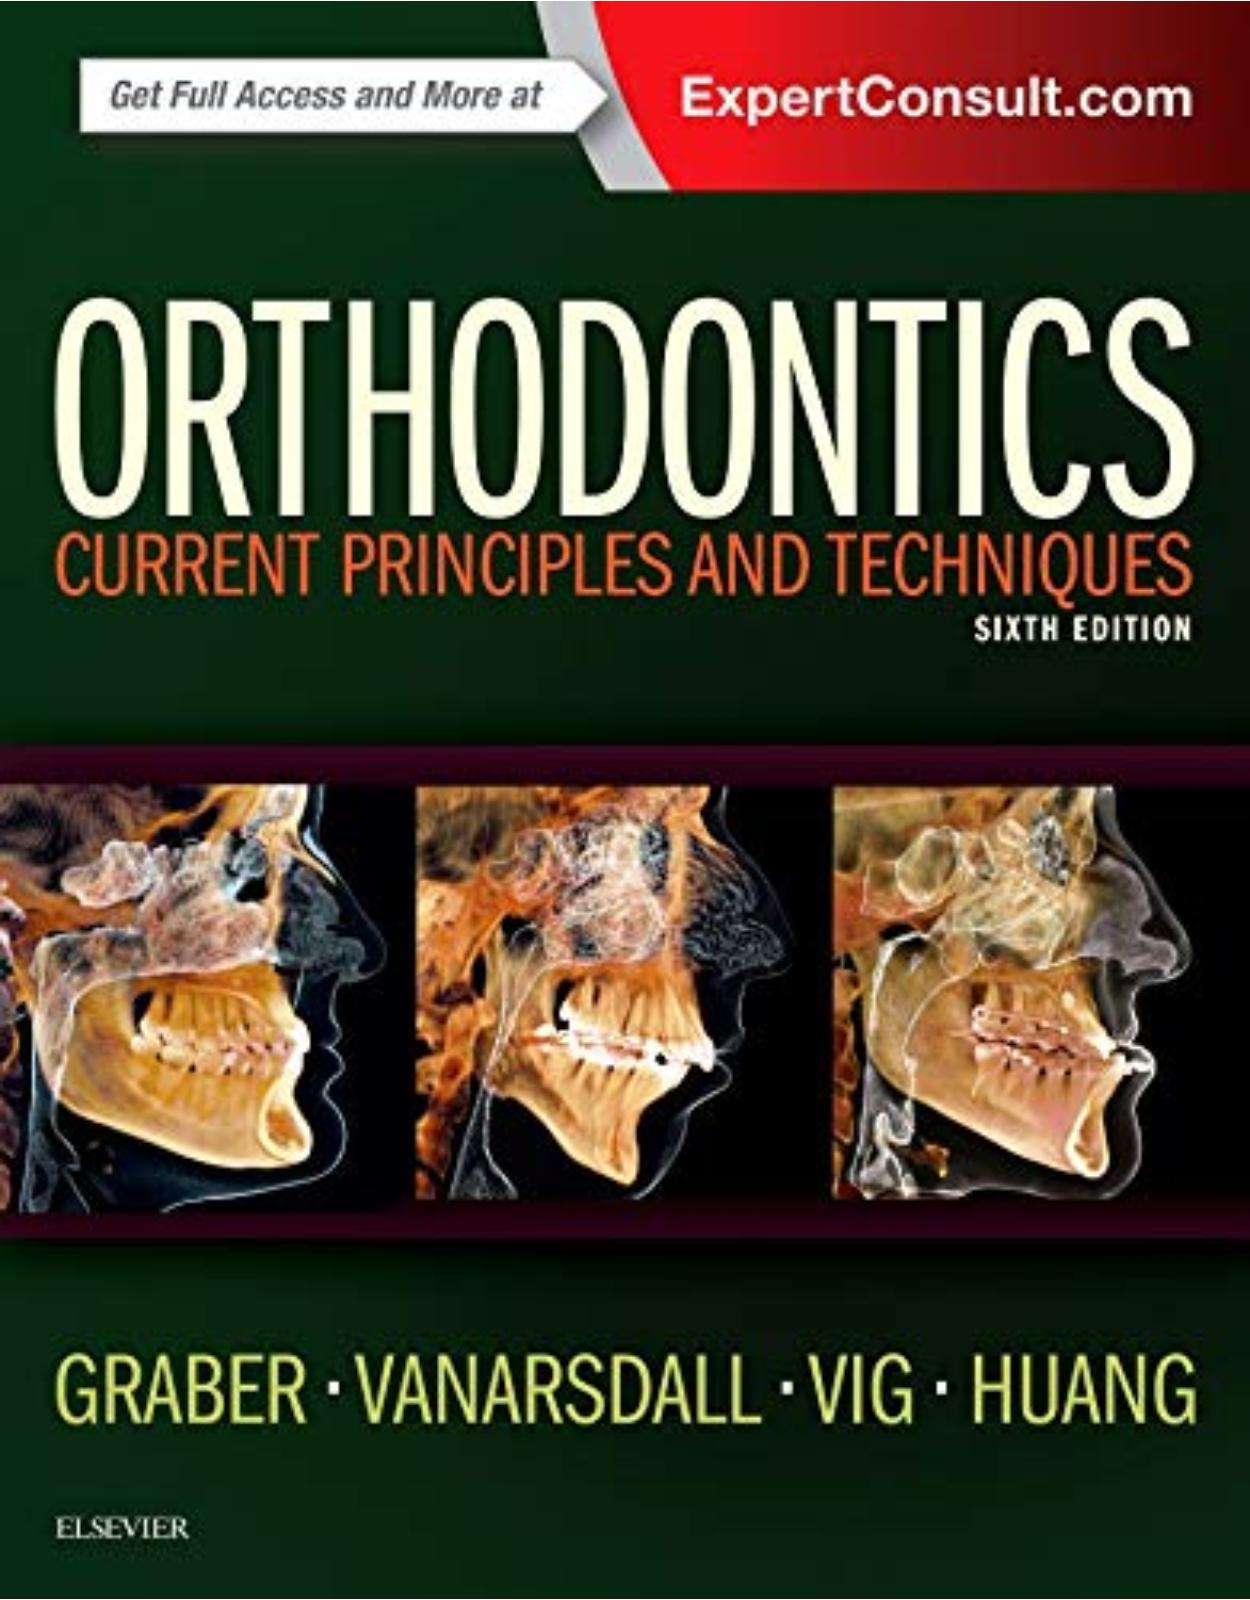 Orthodontics: Current Principles and Techniques, 6e